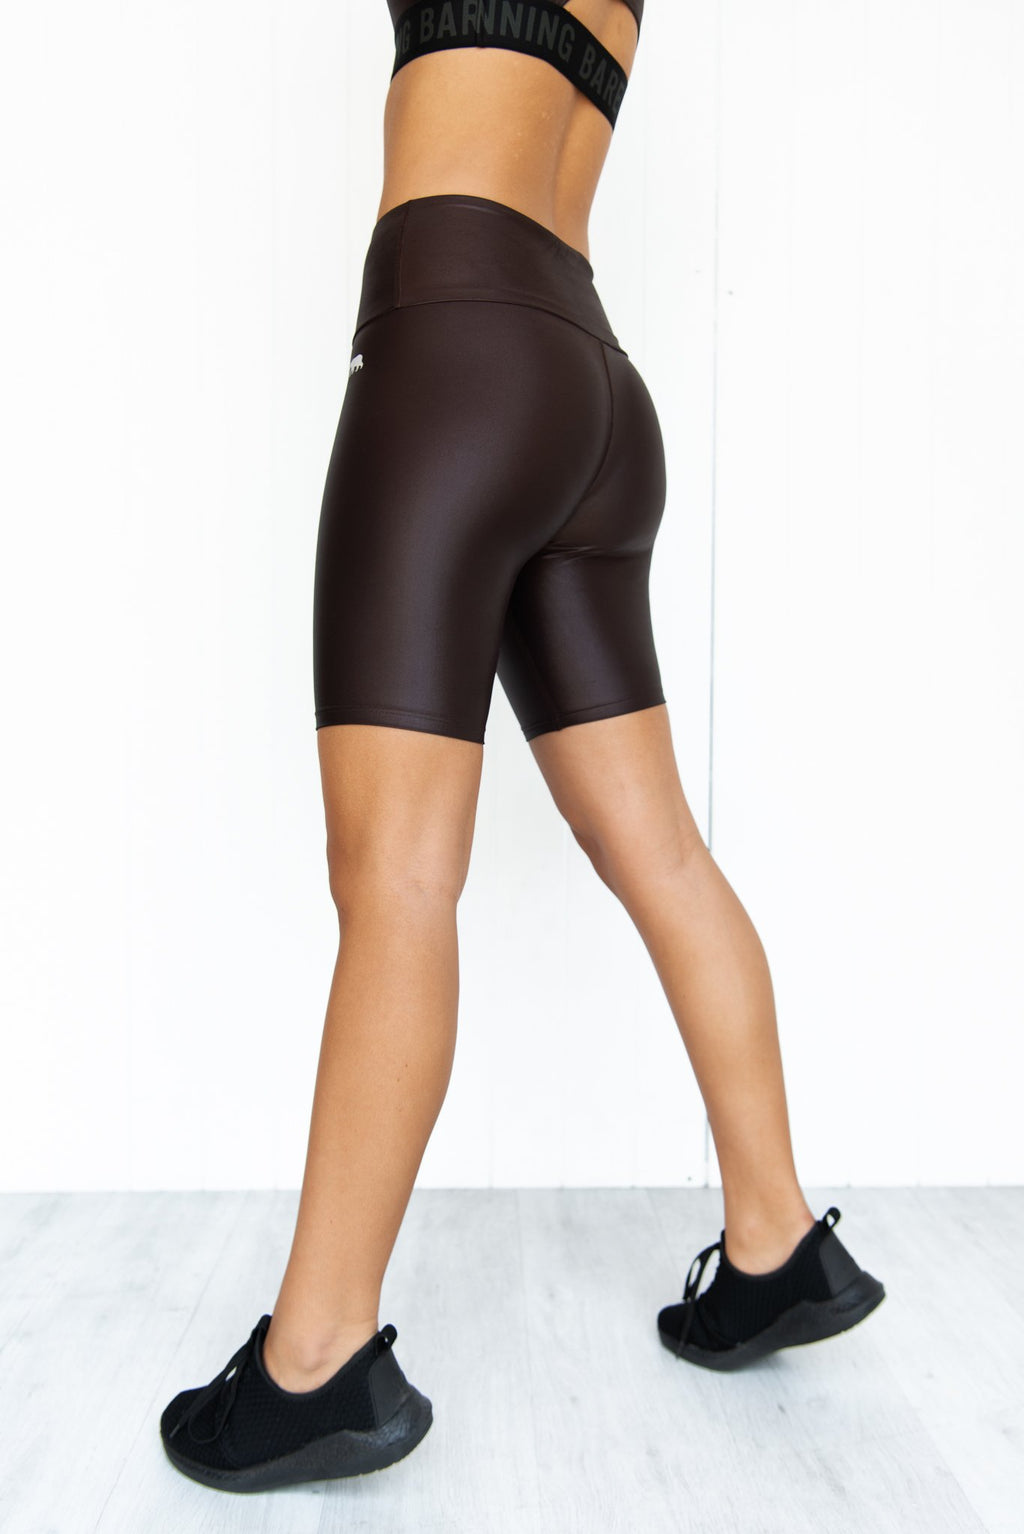 Liquid Spin Class Bike Tight - Chocolate - PURE DASH